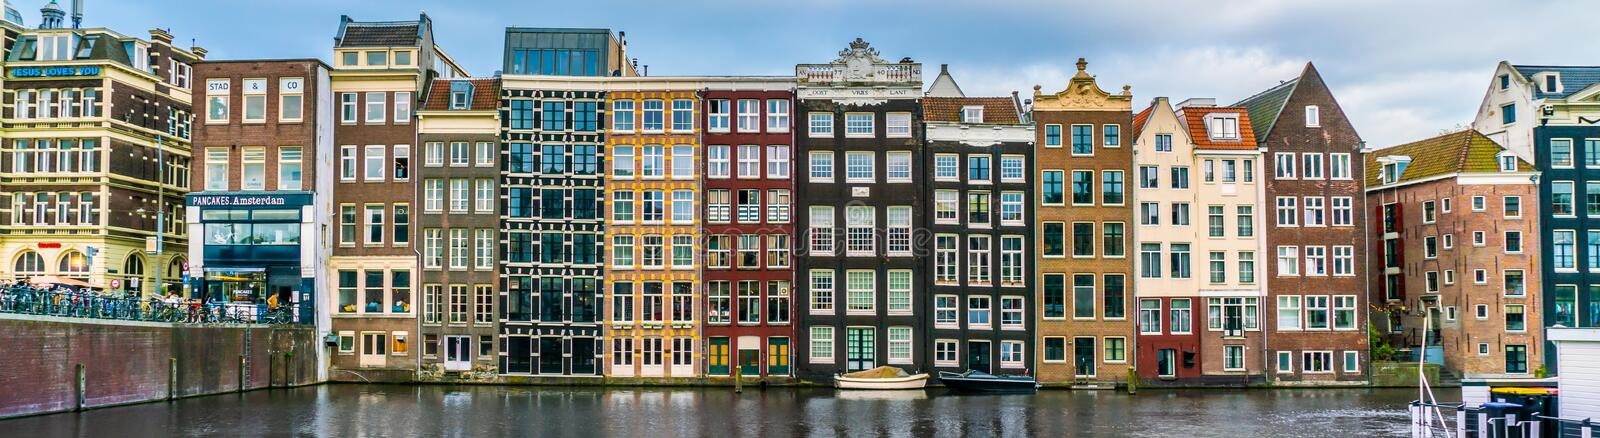 A row of old traditional houses at the Damrak in the center of town royalty free stock image